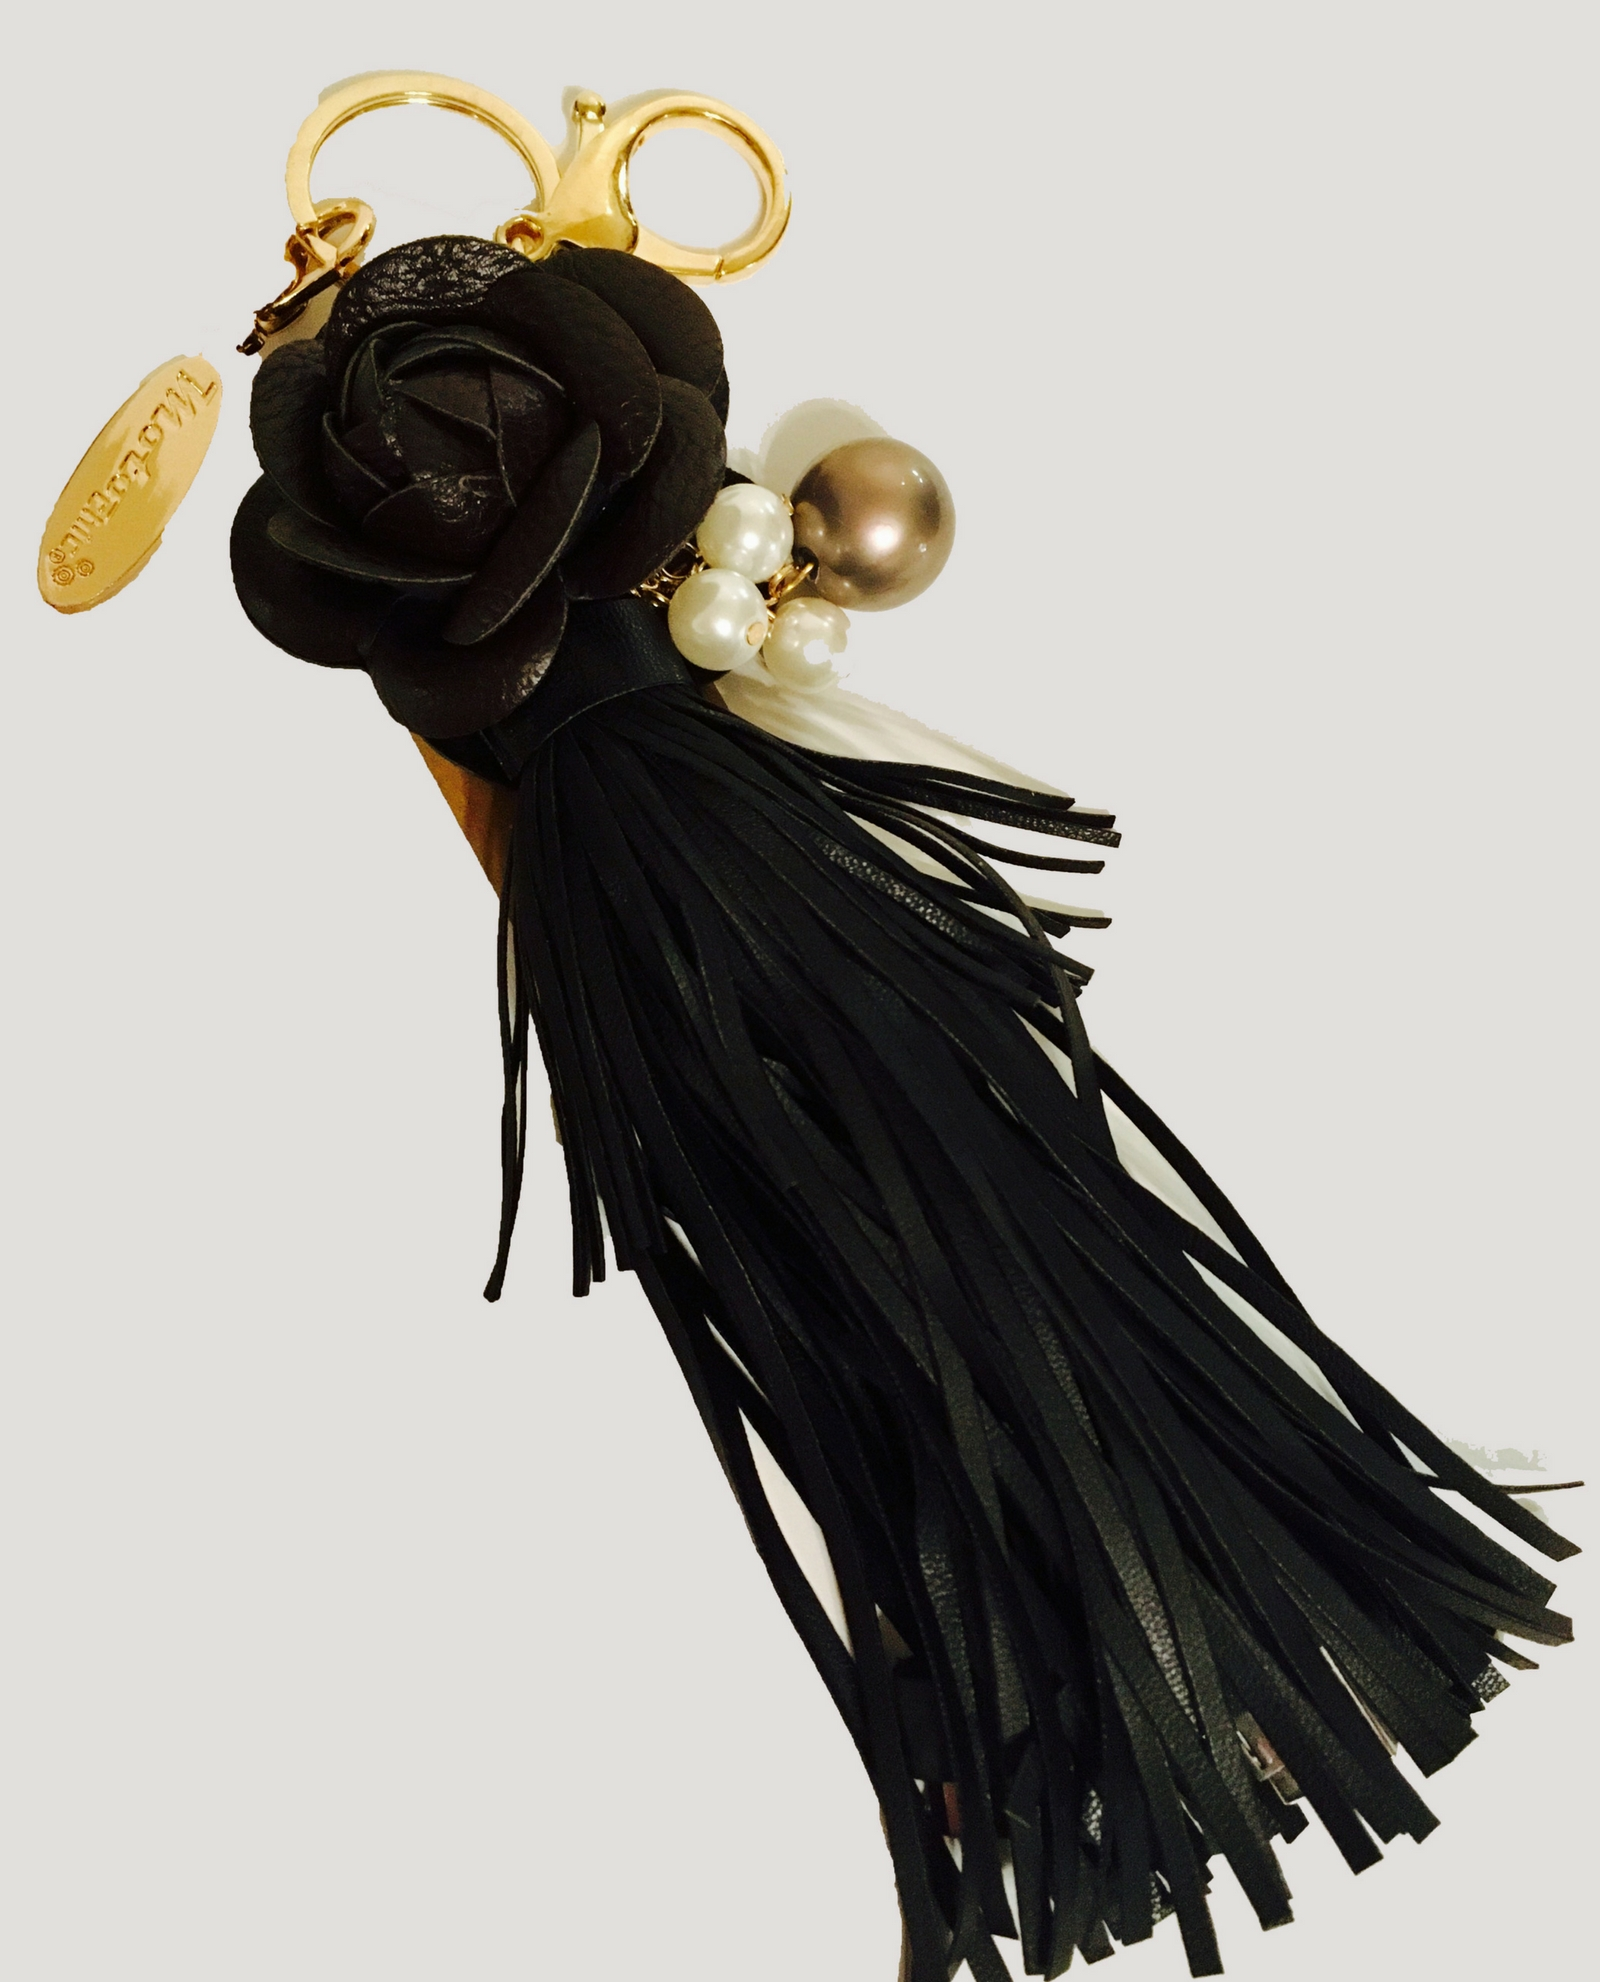 black flower tassel keychain USB charger